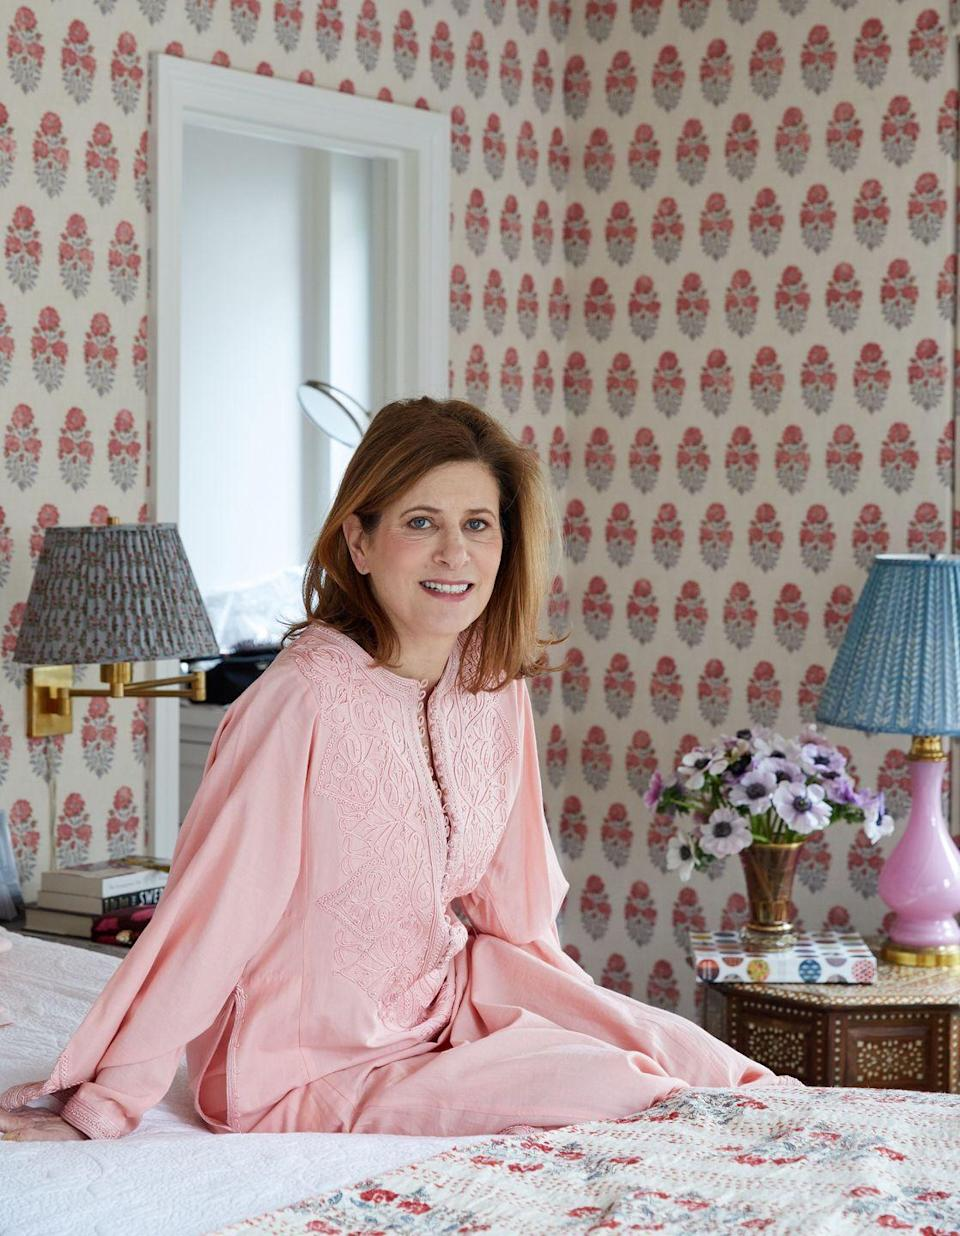 """<p>Lisa Fine, of the eponymous textiles brand, loves Etsy shop <a href=""""https://www.etsy.com/shop/TheTextileTrunk?ref=simple-shop-header-name&listing_id=708038215"""" rel=""""nofollow noopener"""" target=""""_blank"""" data-ylk=""""slk:Textile Trunk"""" class=""""link rapid-noclick-resp"""">Textile Trunk</a> for antique and vintage European textiles. The Shelburne, Vermont–based shop also makes its way to the Brimfield Antique Market in Massachusetts each summer if you want to see the items in person. One of her favorite listings is a <a href=""""https://www.etsy.com/listing/708038215/french-fabric-purple-pink-floral-circa?ref=shop_home_active_208&frs=1&sca=1"""" rel=""""nofollow noopener"""" target=""""_blank"""" data-ylk=""""slk:French purple and pink floral fabric"""" class=""""link rapid-noclick-resp"""">French purple and pink floral fabric</a> from the mid-19th century. </p><p>You can explore Fine's passion for globally inspired textiles, design, and style in her book <em><a href=""""https://www.amazon.com/Near-Far-Interiors-I-Love/dp/0865653658"""" rel=""""nofollow noopener"""" target=""""_blank"""" data-ylk=""""slk:Near & Far."""" class=""""link rapid-noclick-resp"""">Near & Far. </a></em></p>"""